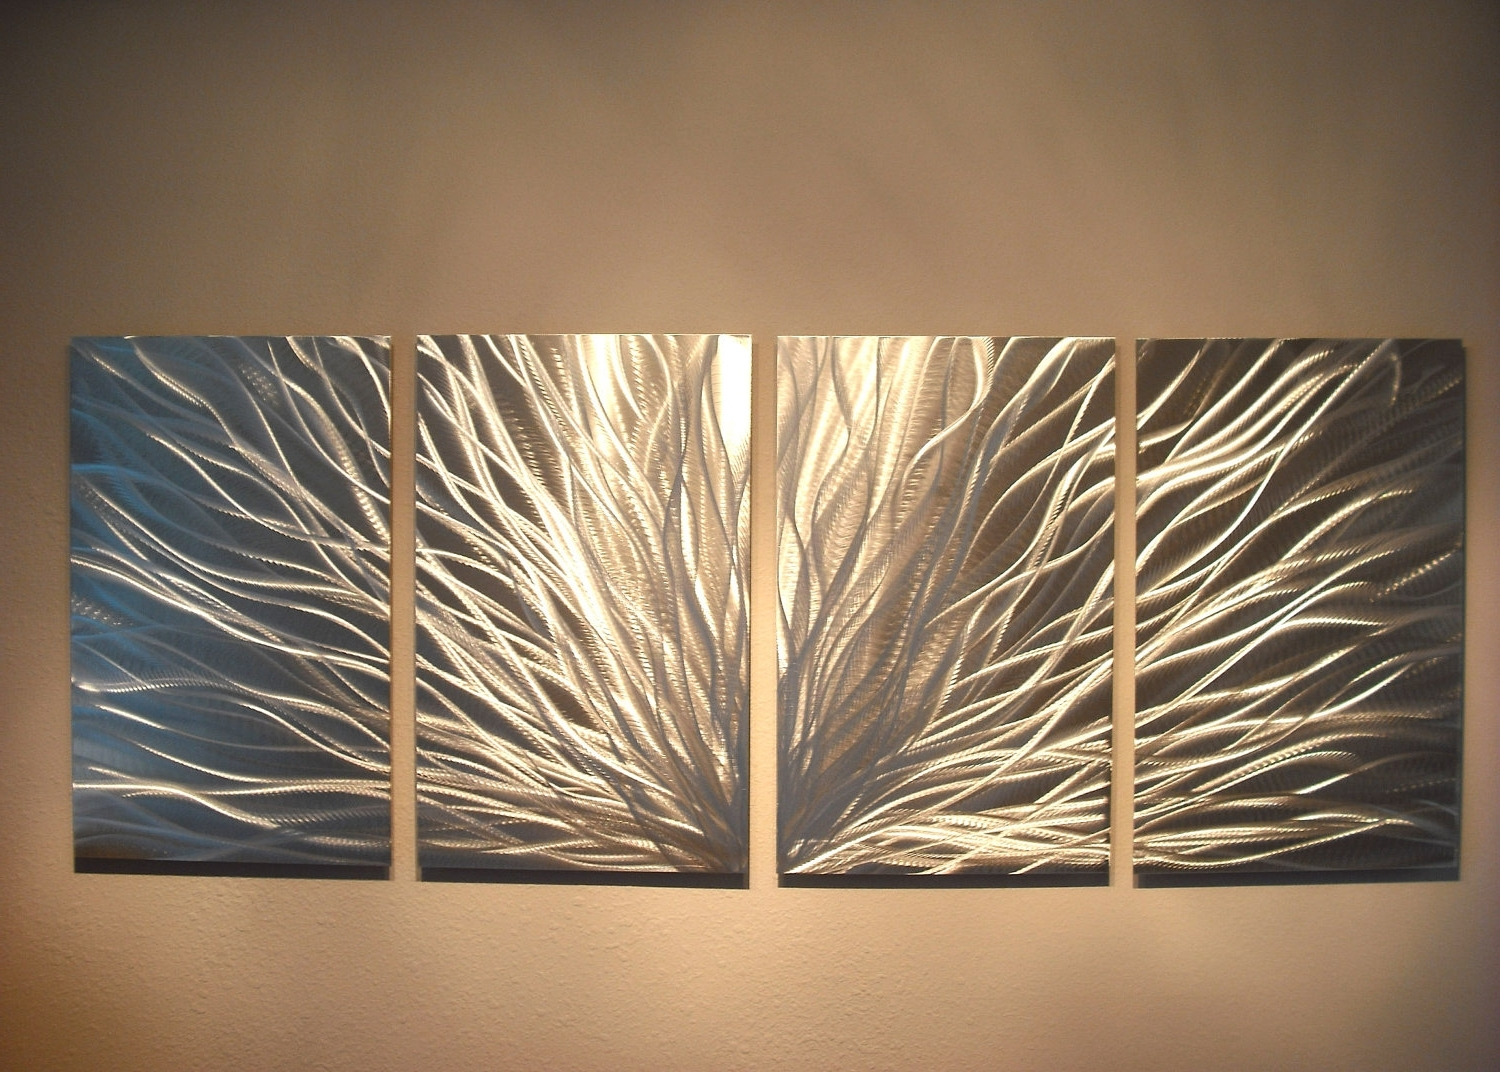 Abstract Metal Wall Art Within Recent Radiance – Abstract Metal Wall Art Contemporary Modern Decor (View 7 of 15)